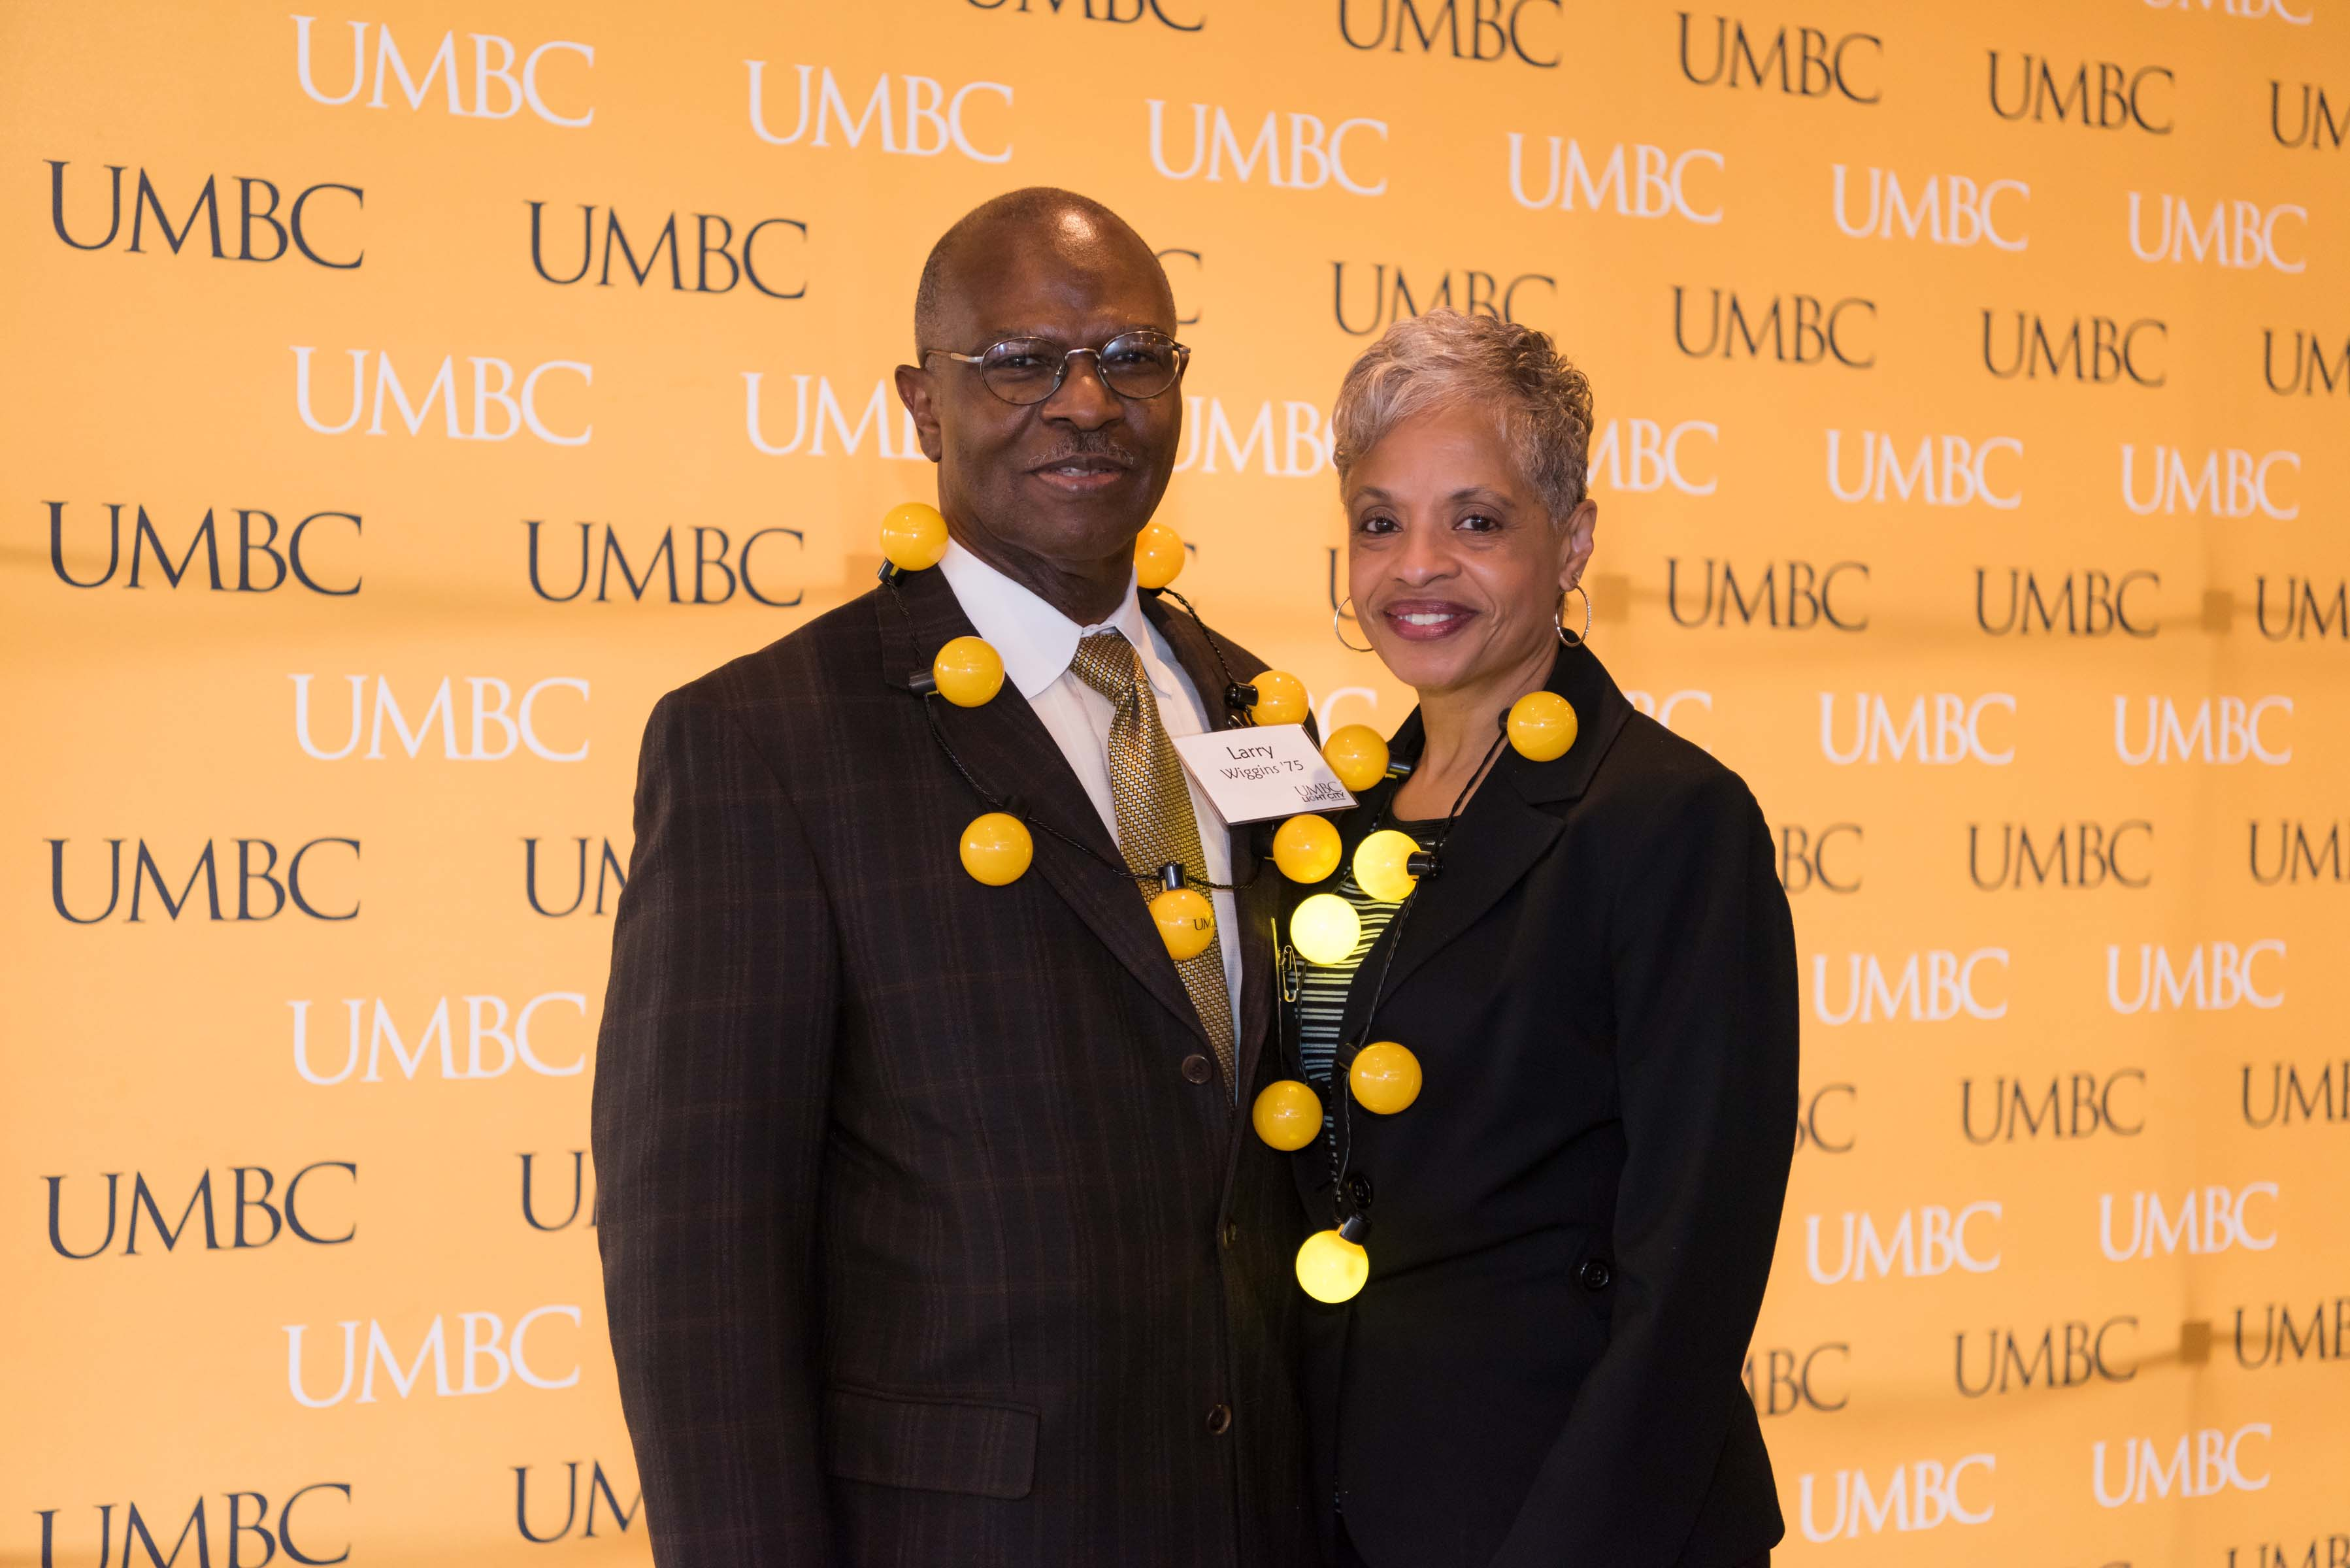 Couple pose in front of UMBC wall at Pier 5 reception